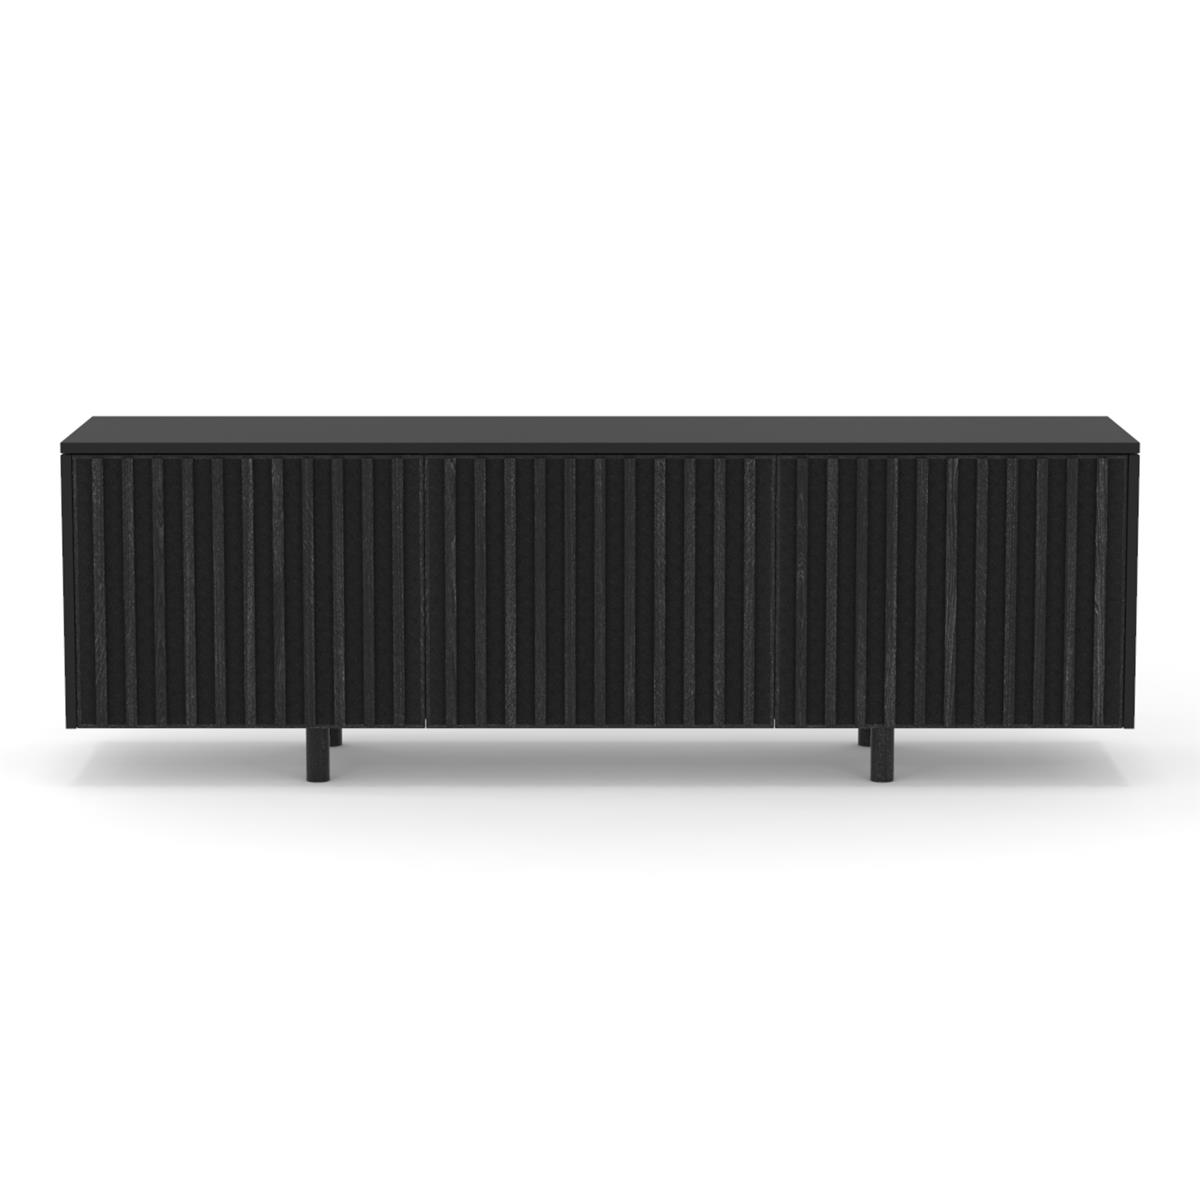 dB Silent Sideboard - Anthracite & Oak legs